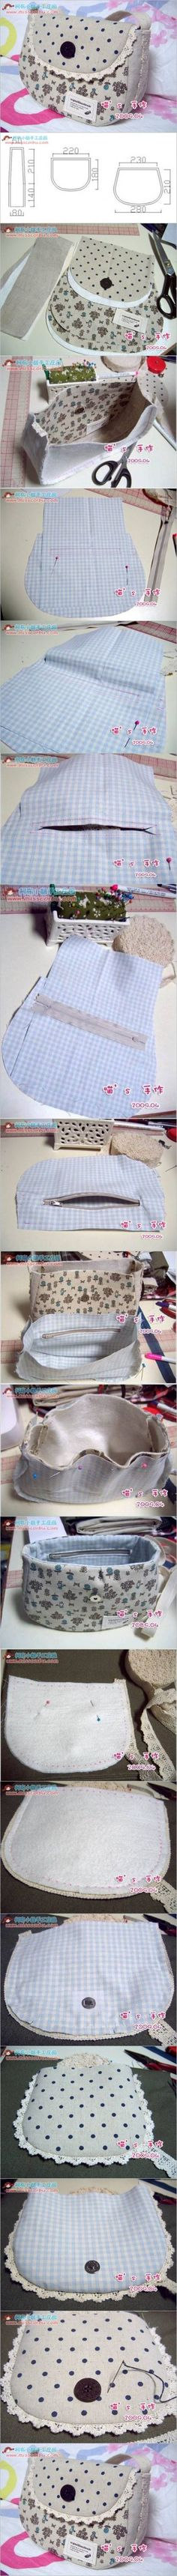 DIY How to Sew a Simple Summer Handbag